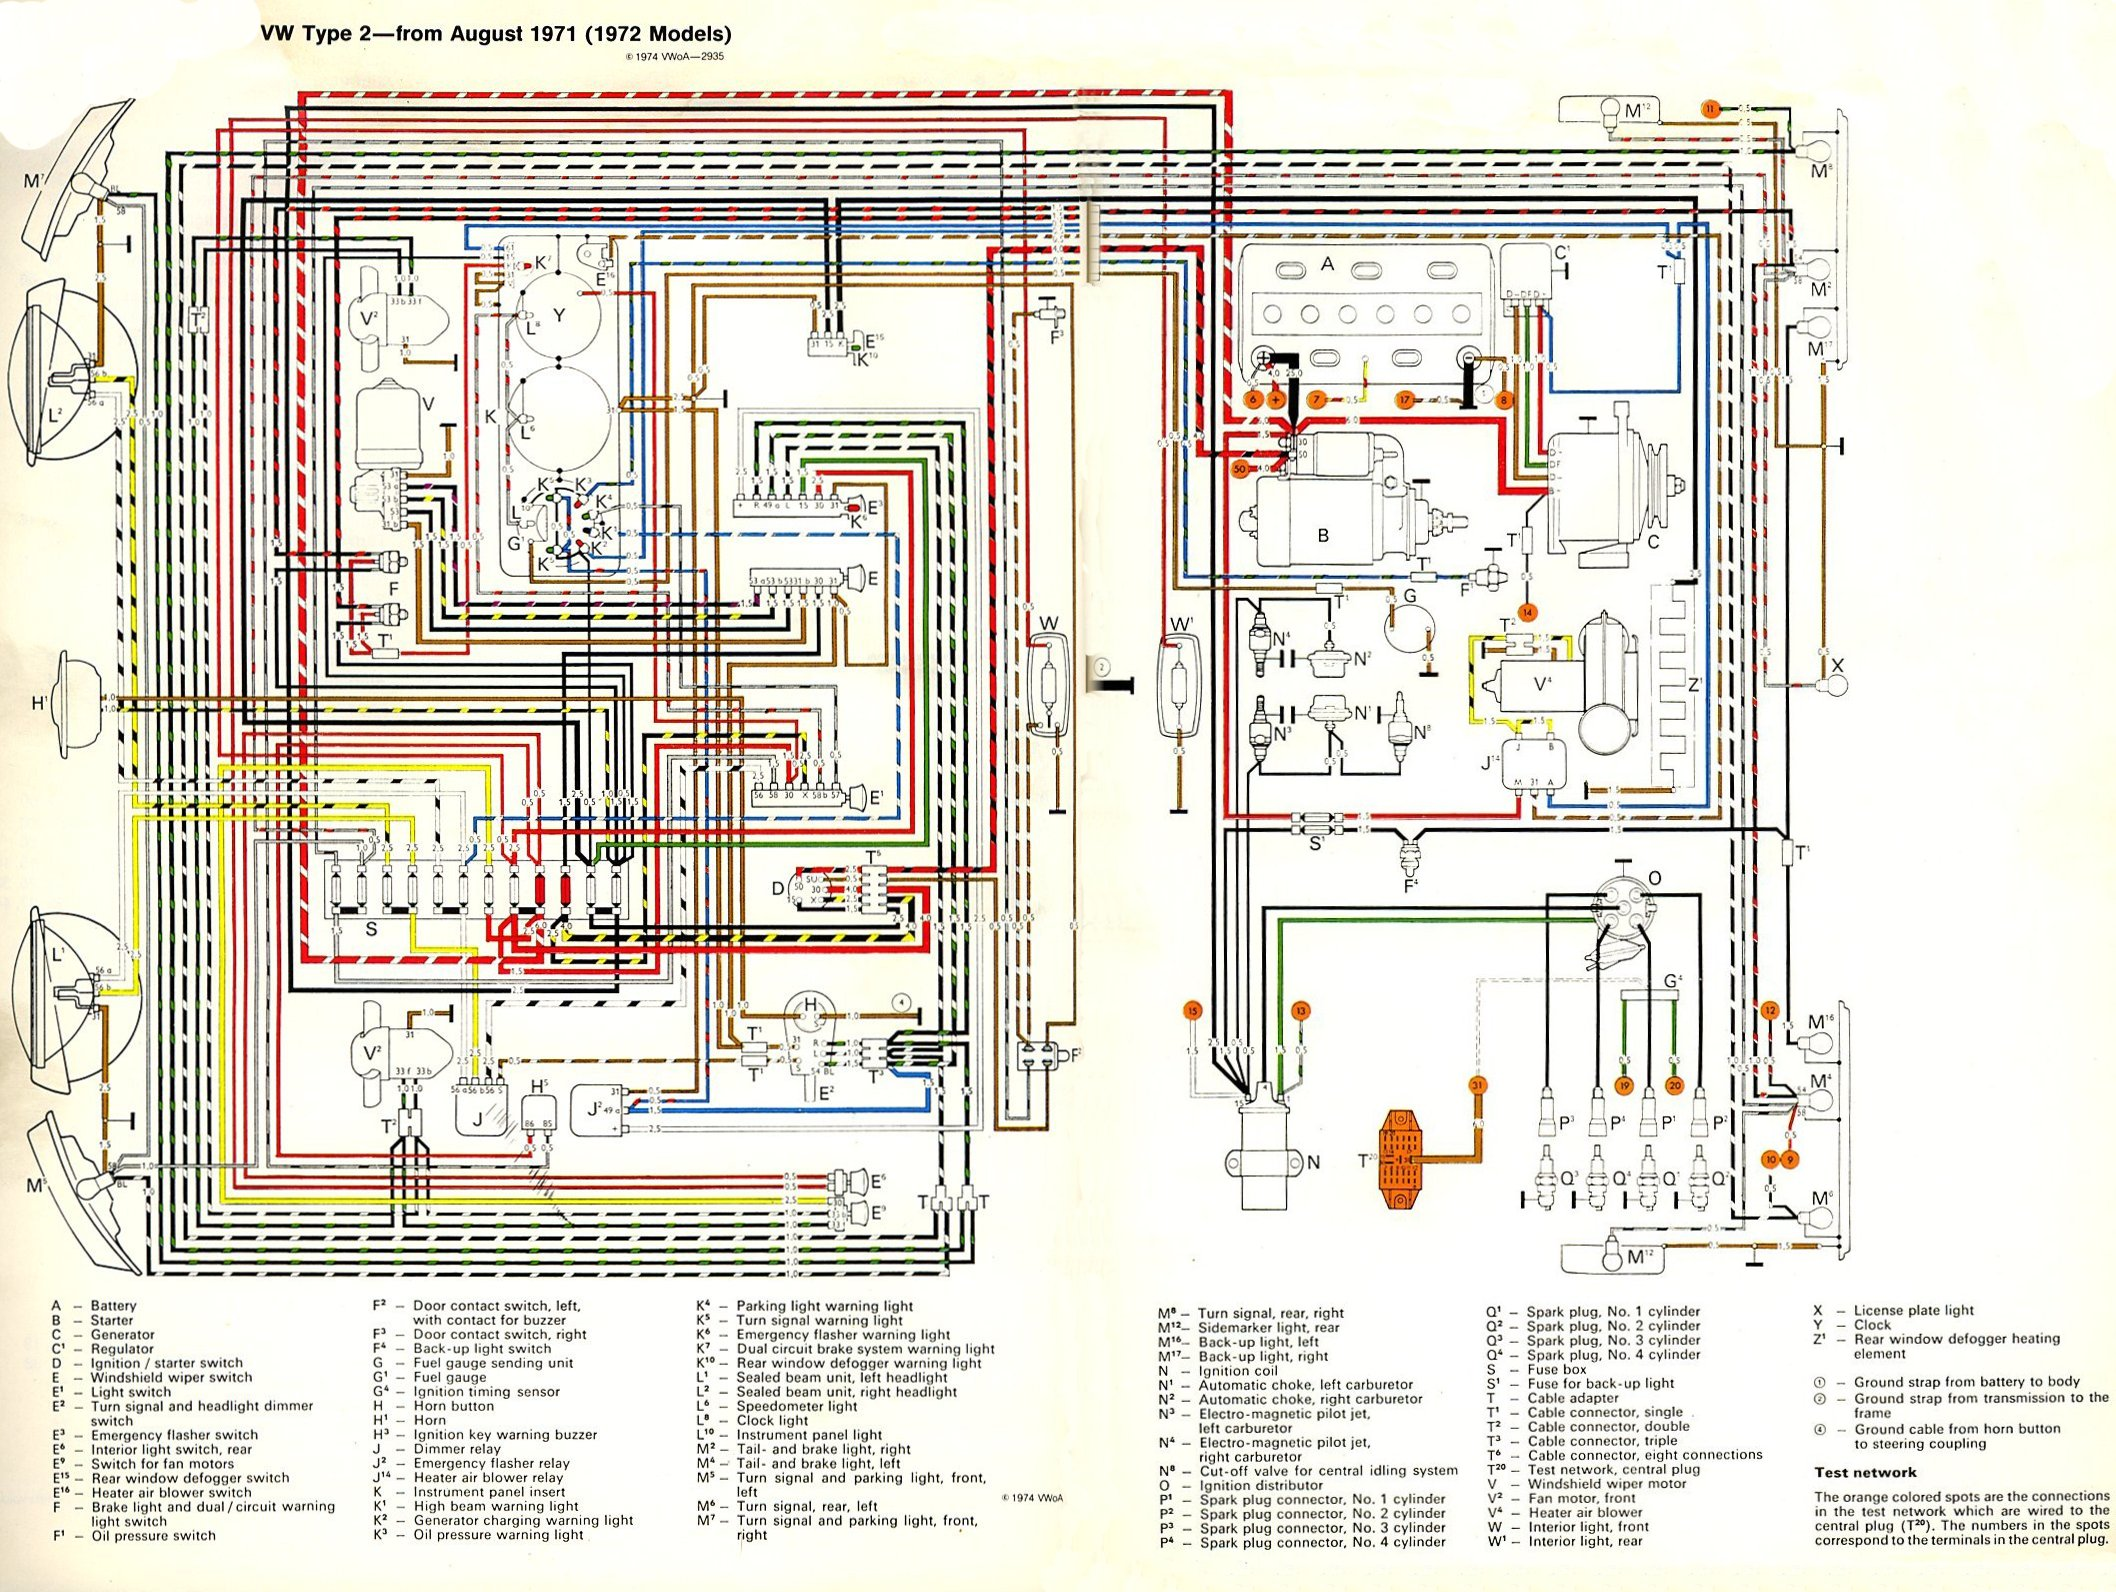 bus_1972_wiring wiring diagram for 1971 vw beetle the wiring diagram 1975 c10 wiring diagram at gsmx.co